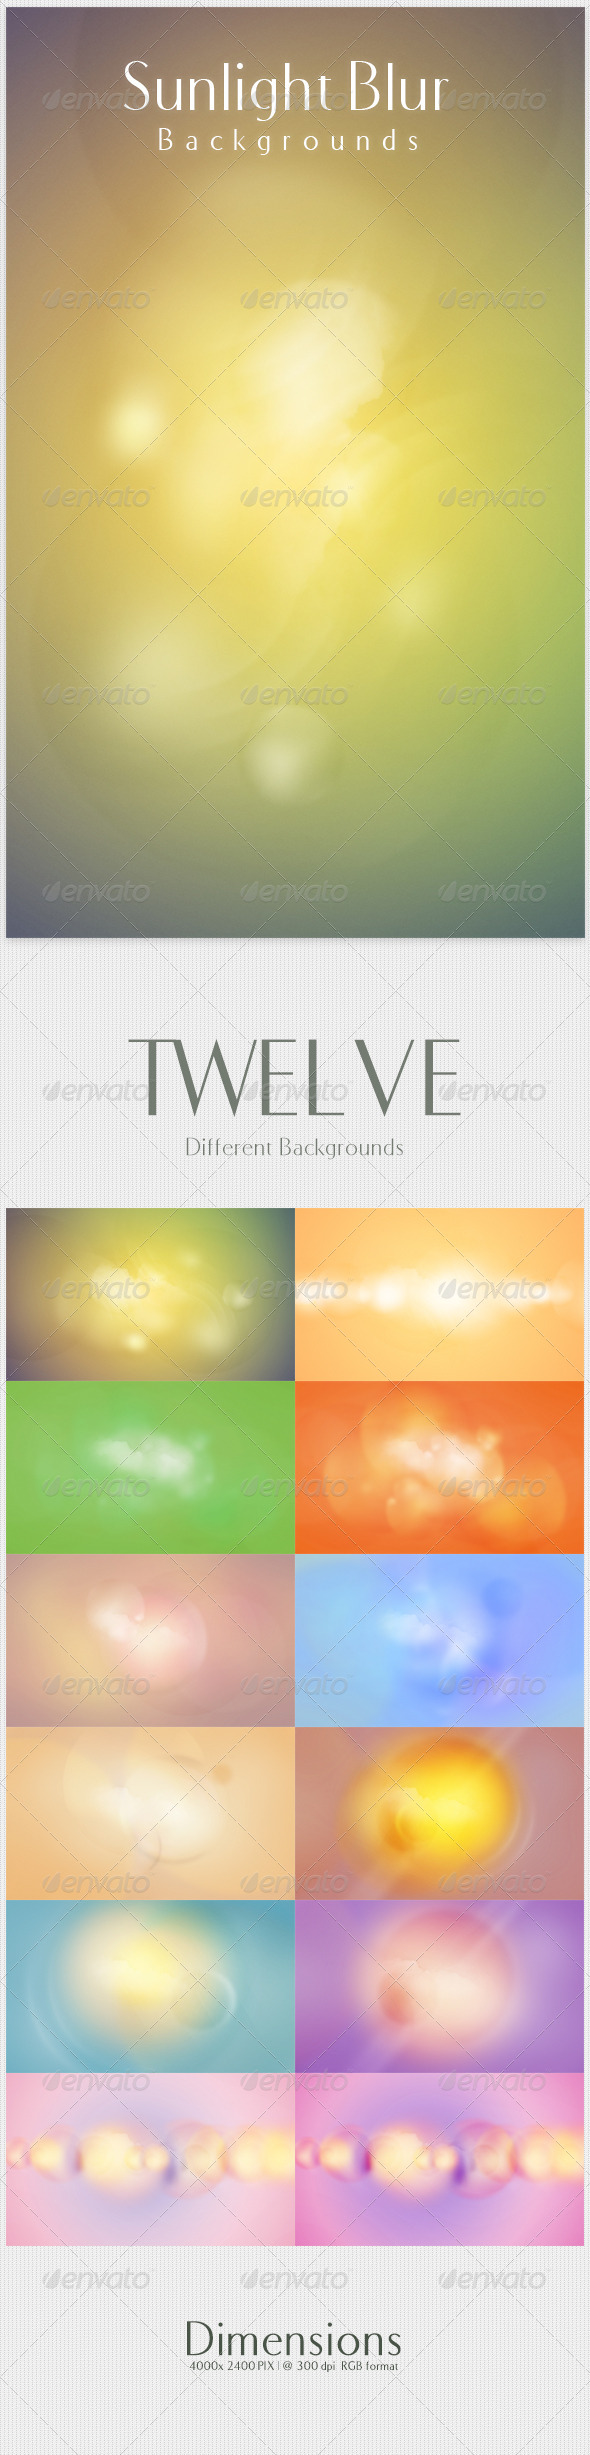 Sunlight Blur Backgrounds - Abstract Backgrounds